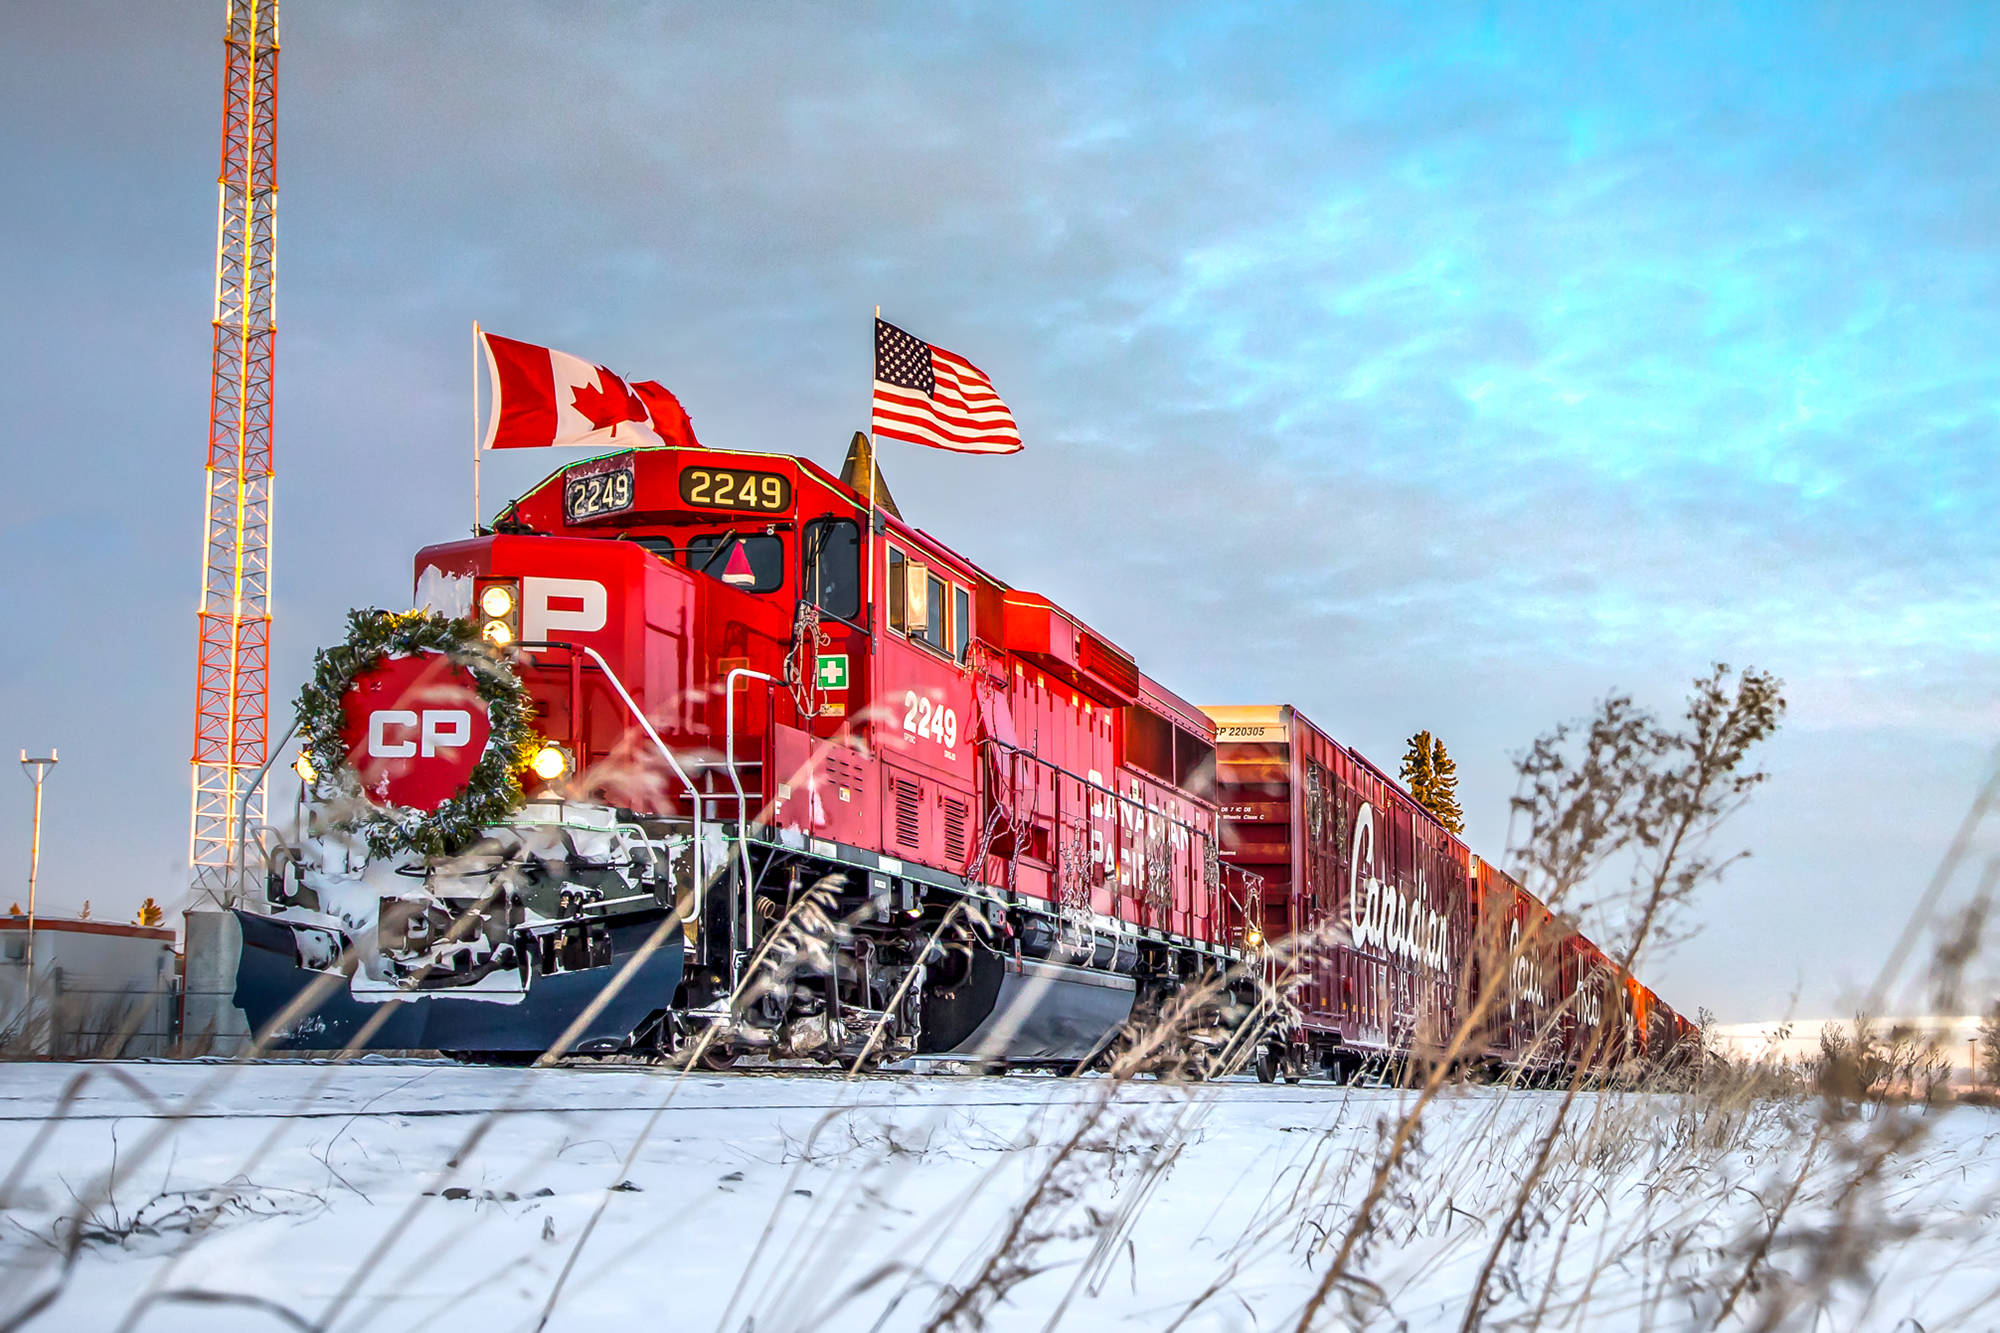 CP Rail Holiday Trains travels across Canada to raise awareness, funds and food for Canadian food banks. This year, the holiday train arrives in the Shuswap on Dec. 14. (Photo contributed)